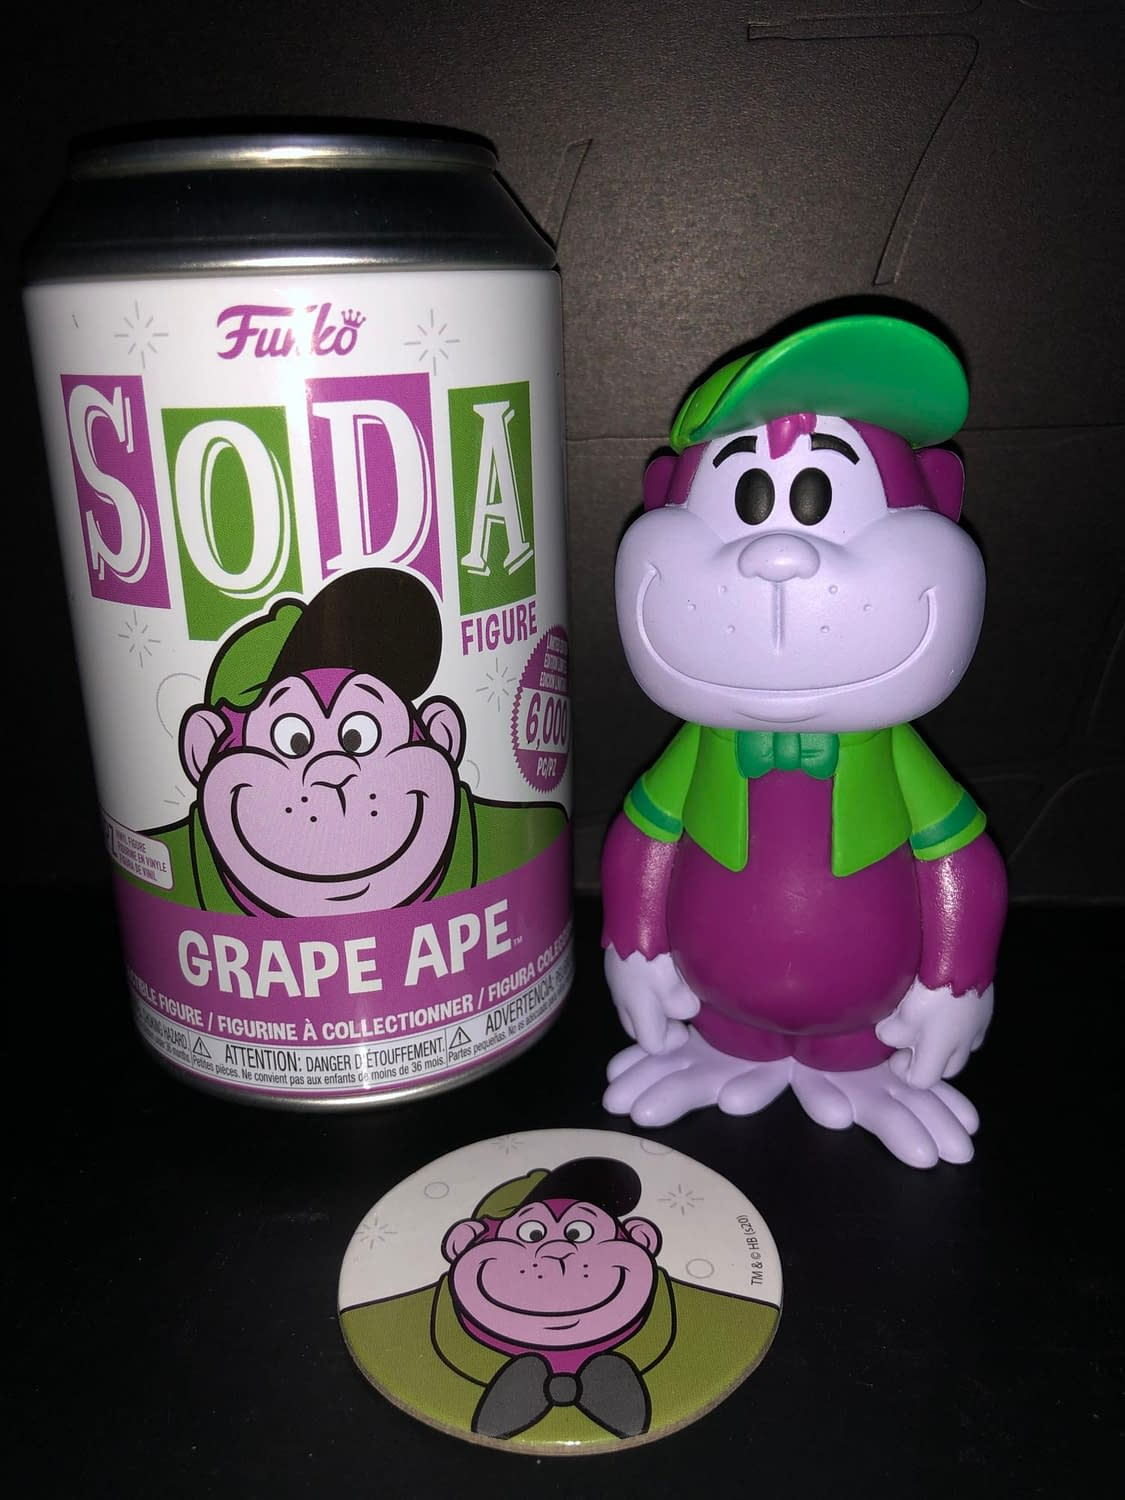 Funko Soda Vinyl Figure The Grape Ape Show Great Ape figure and can front view.